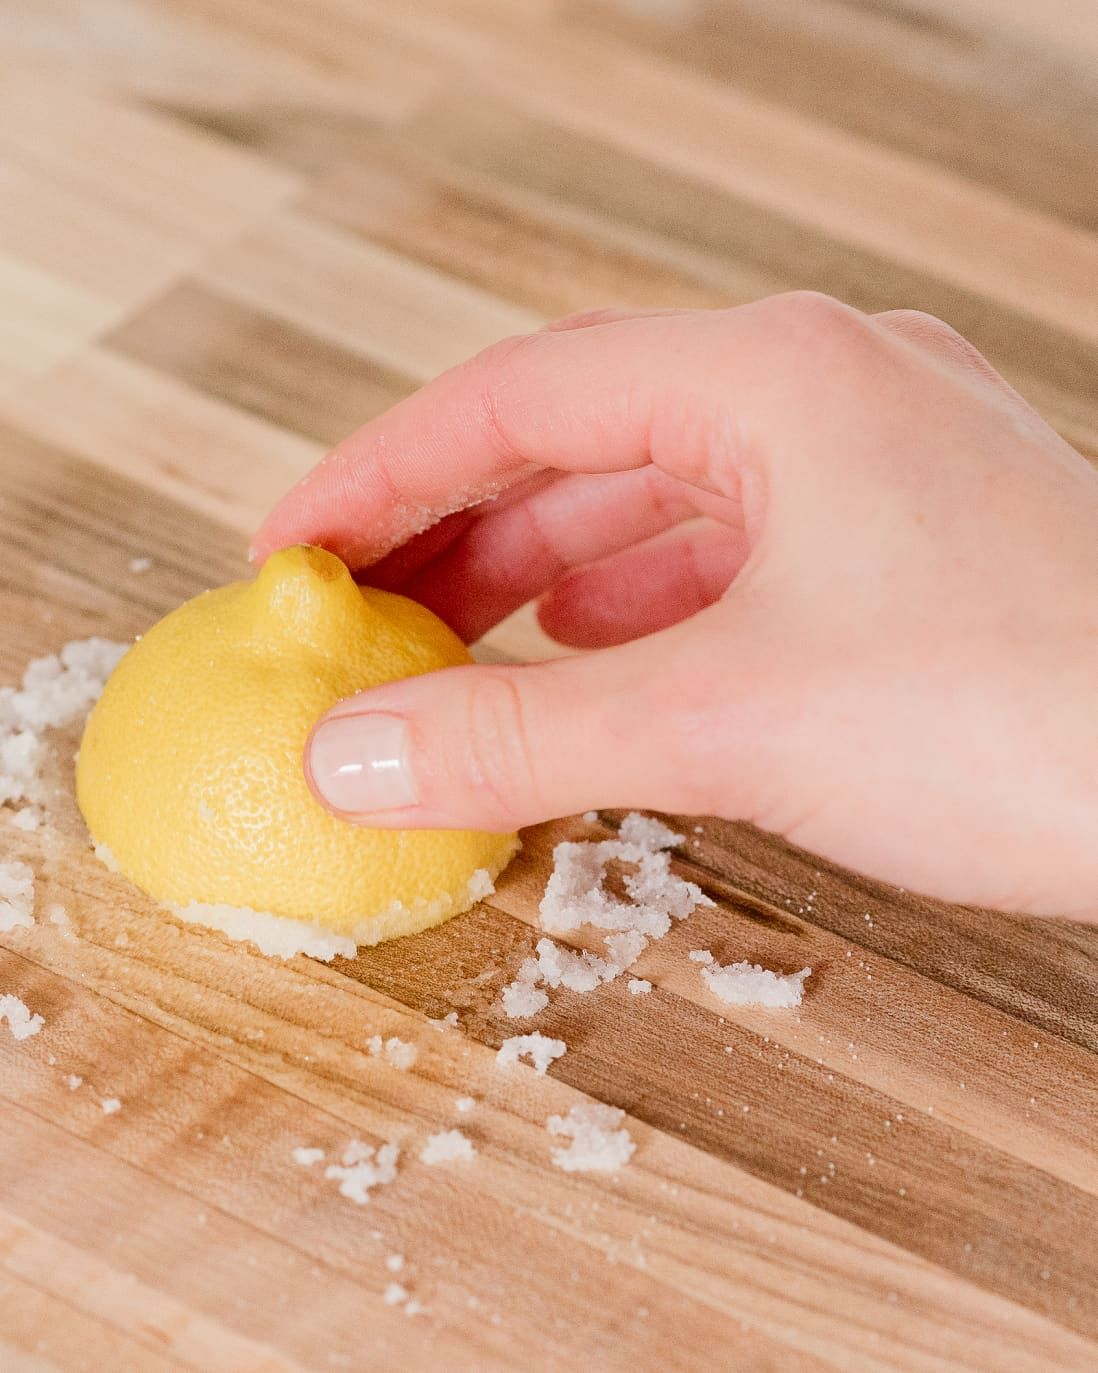 How to remove stains from butcher block countertops in